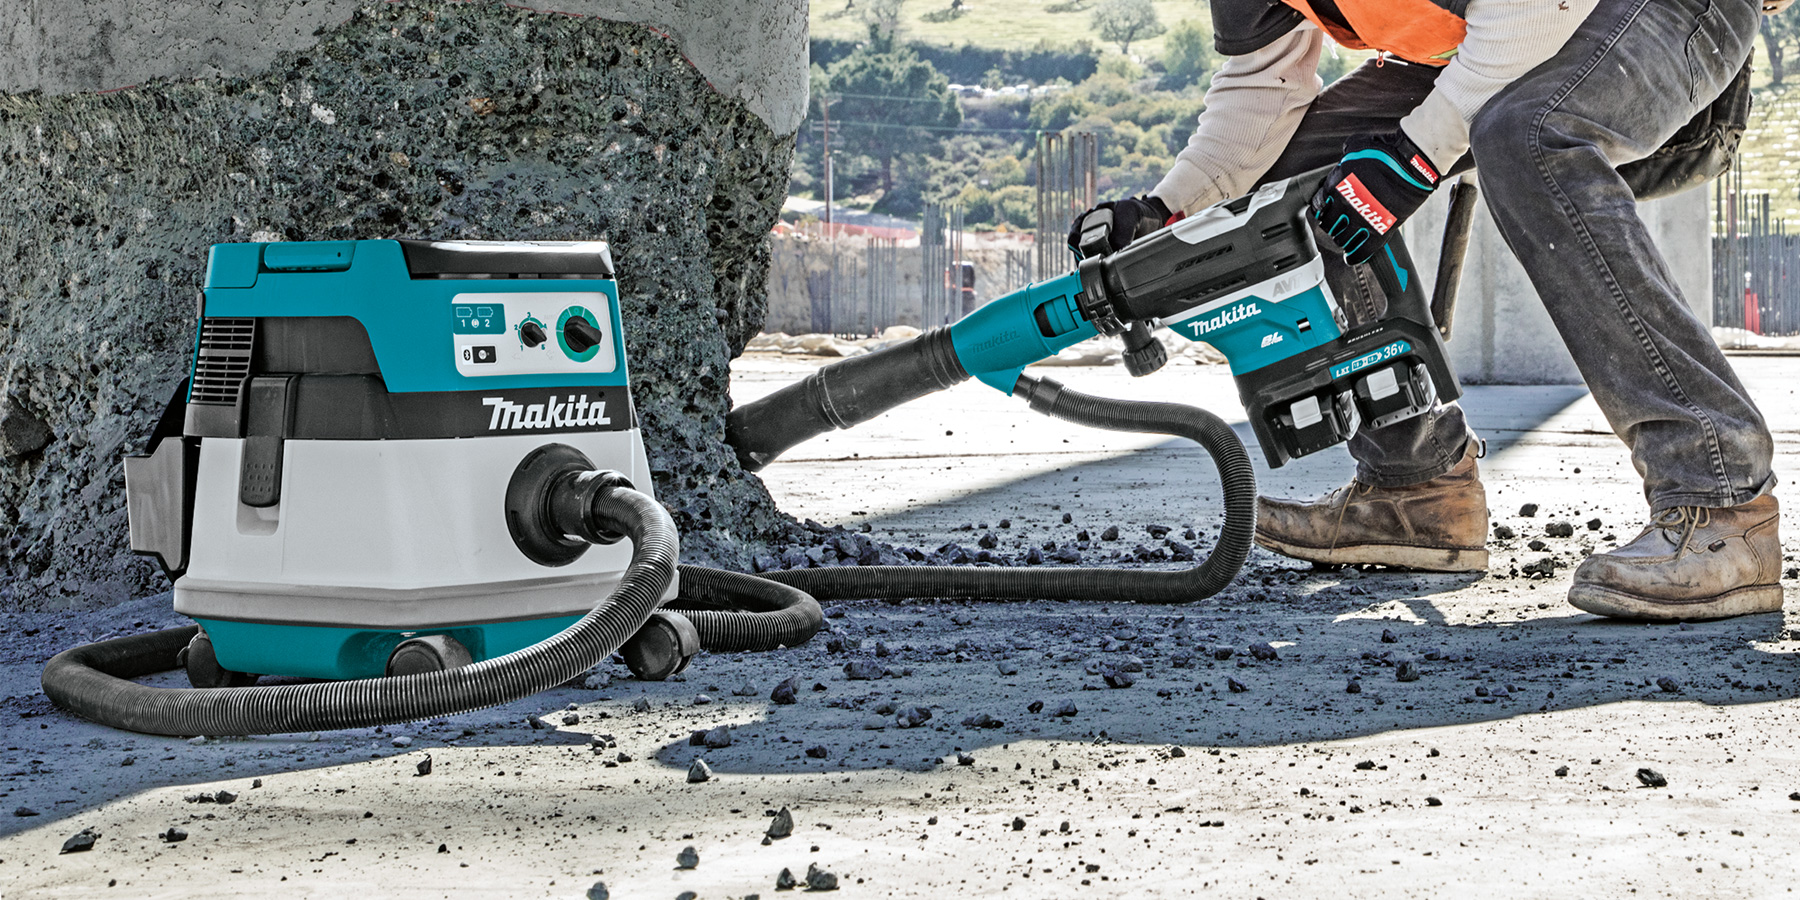 Hotel Auto Hogar Barcelona Opiniones Makita Cordless And Corded Power Tools Power Equipment